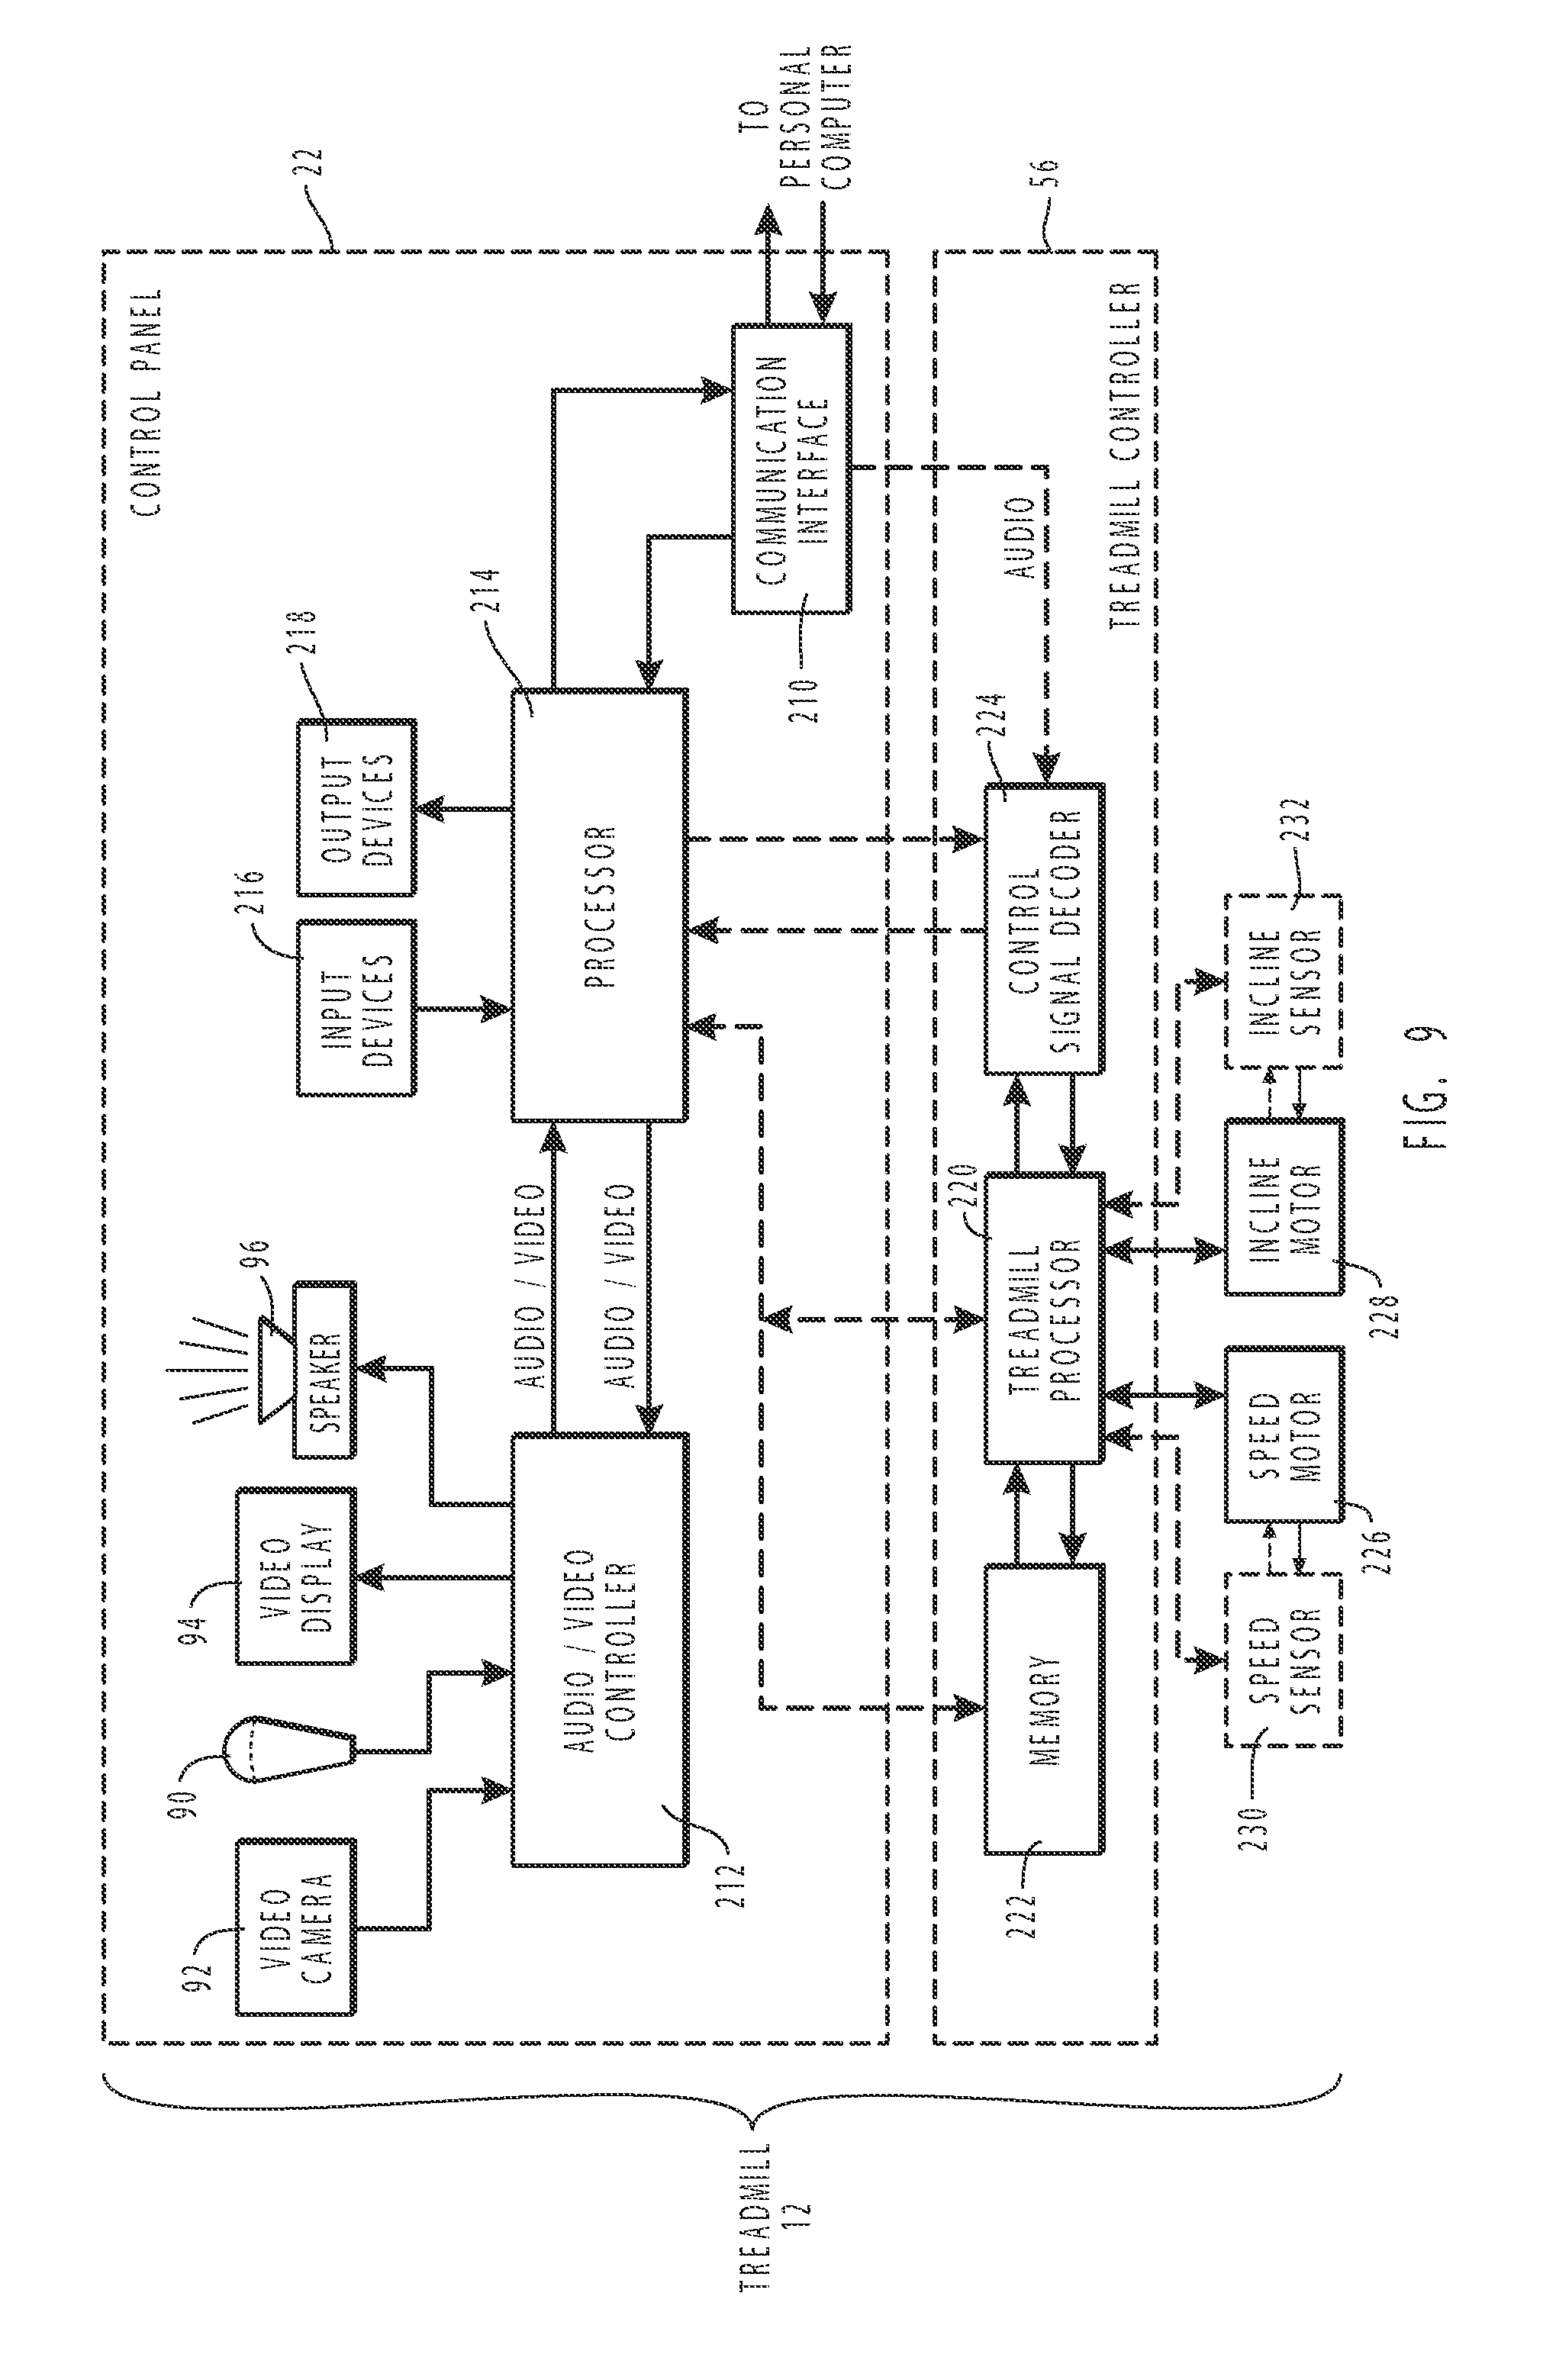 Patent Us8690735 Systems For Interaction With Exercise Device Schematics Depot Tm Ultrasonic Switch Circuit Drawing